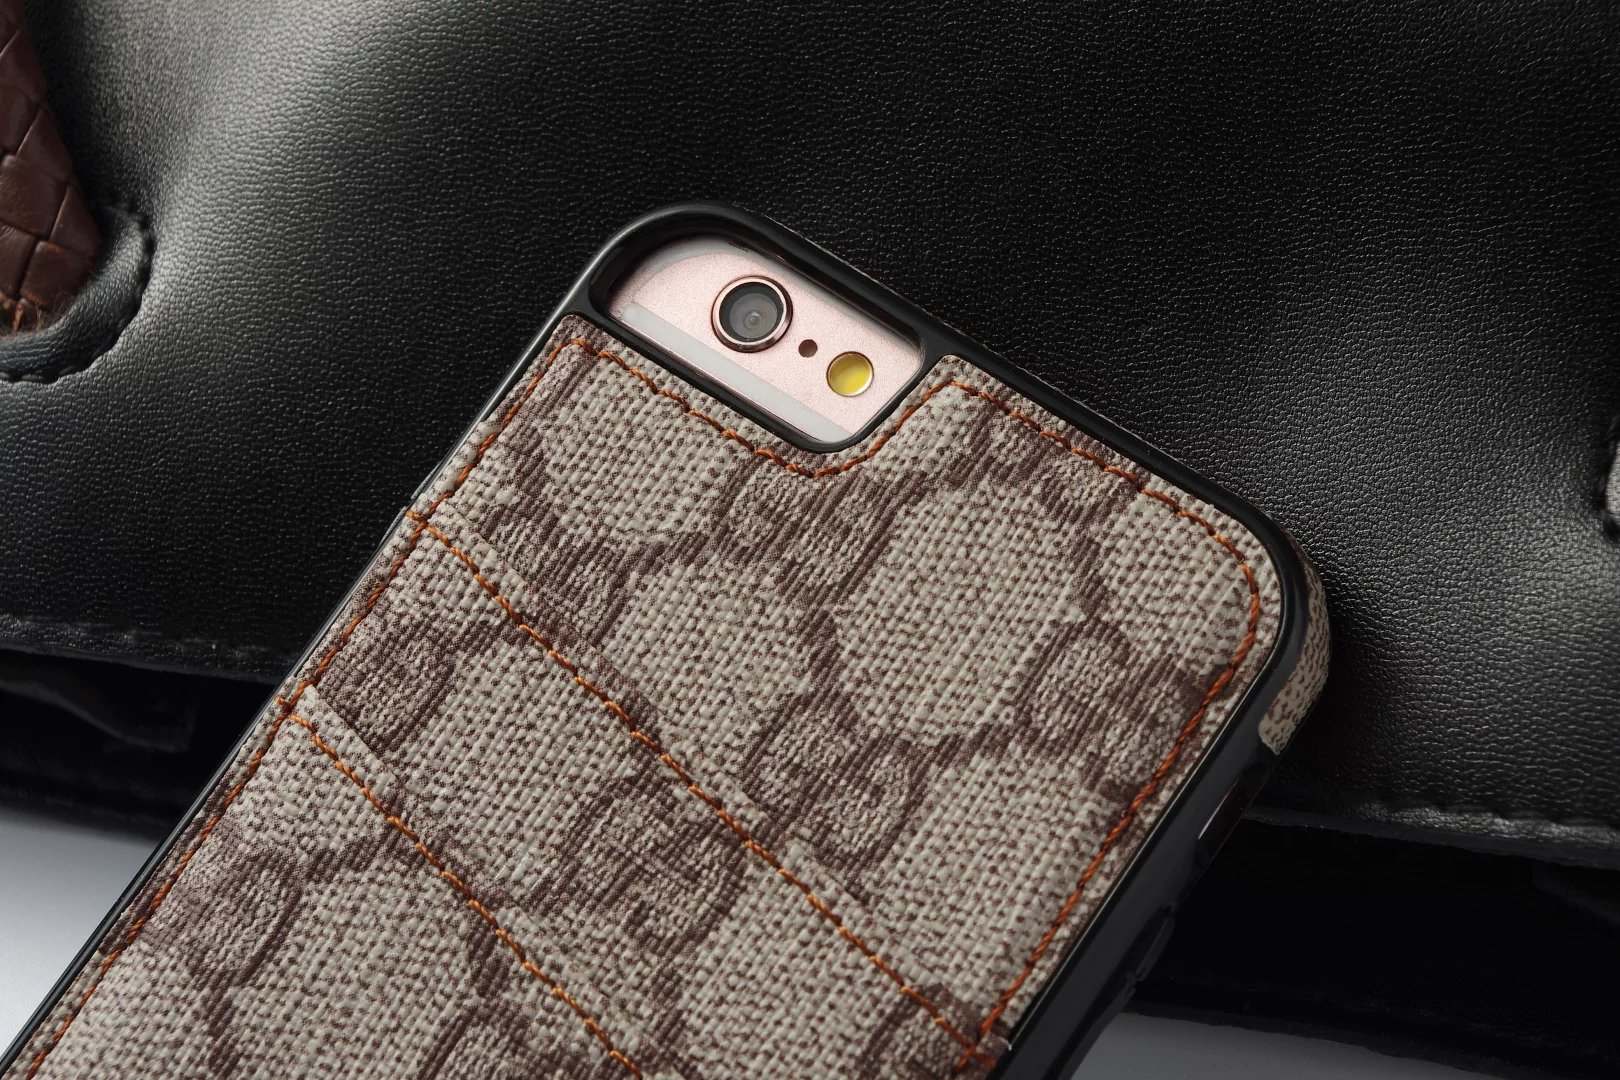 designer cases for iphone 8 cases for the iphone 8 Louis Vuitton iphone 8 case make your own custom iphone case shop phone cases custom case phone phone cover accessories mobile cases & covers iphone 8 phone case